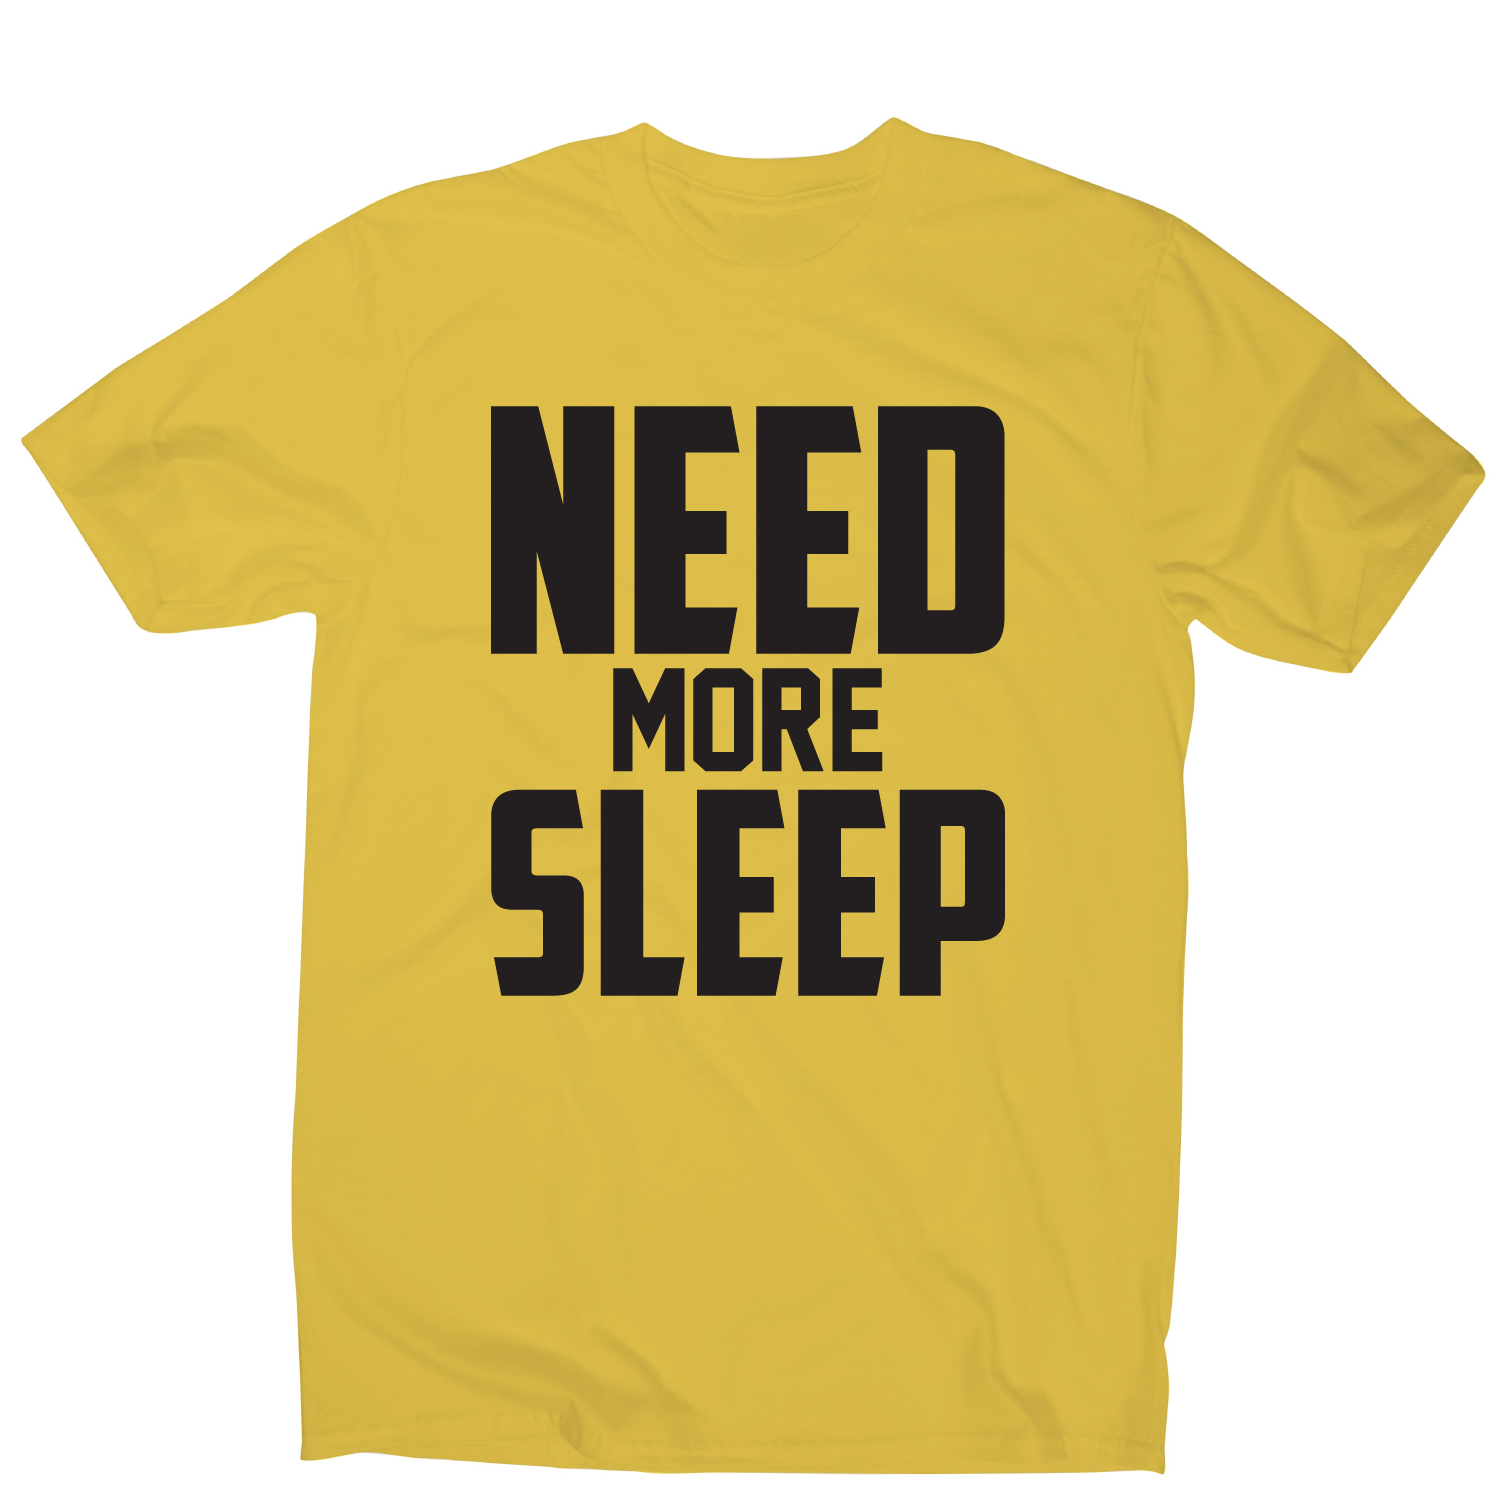 Sleep Lazy Funny Ladies Lady Fit T Shirt Size 6-16